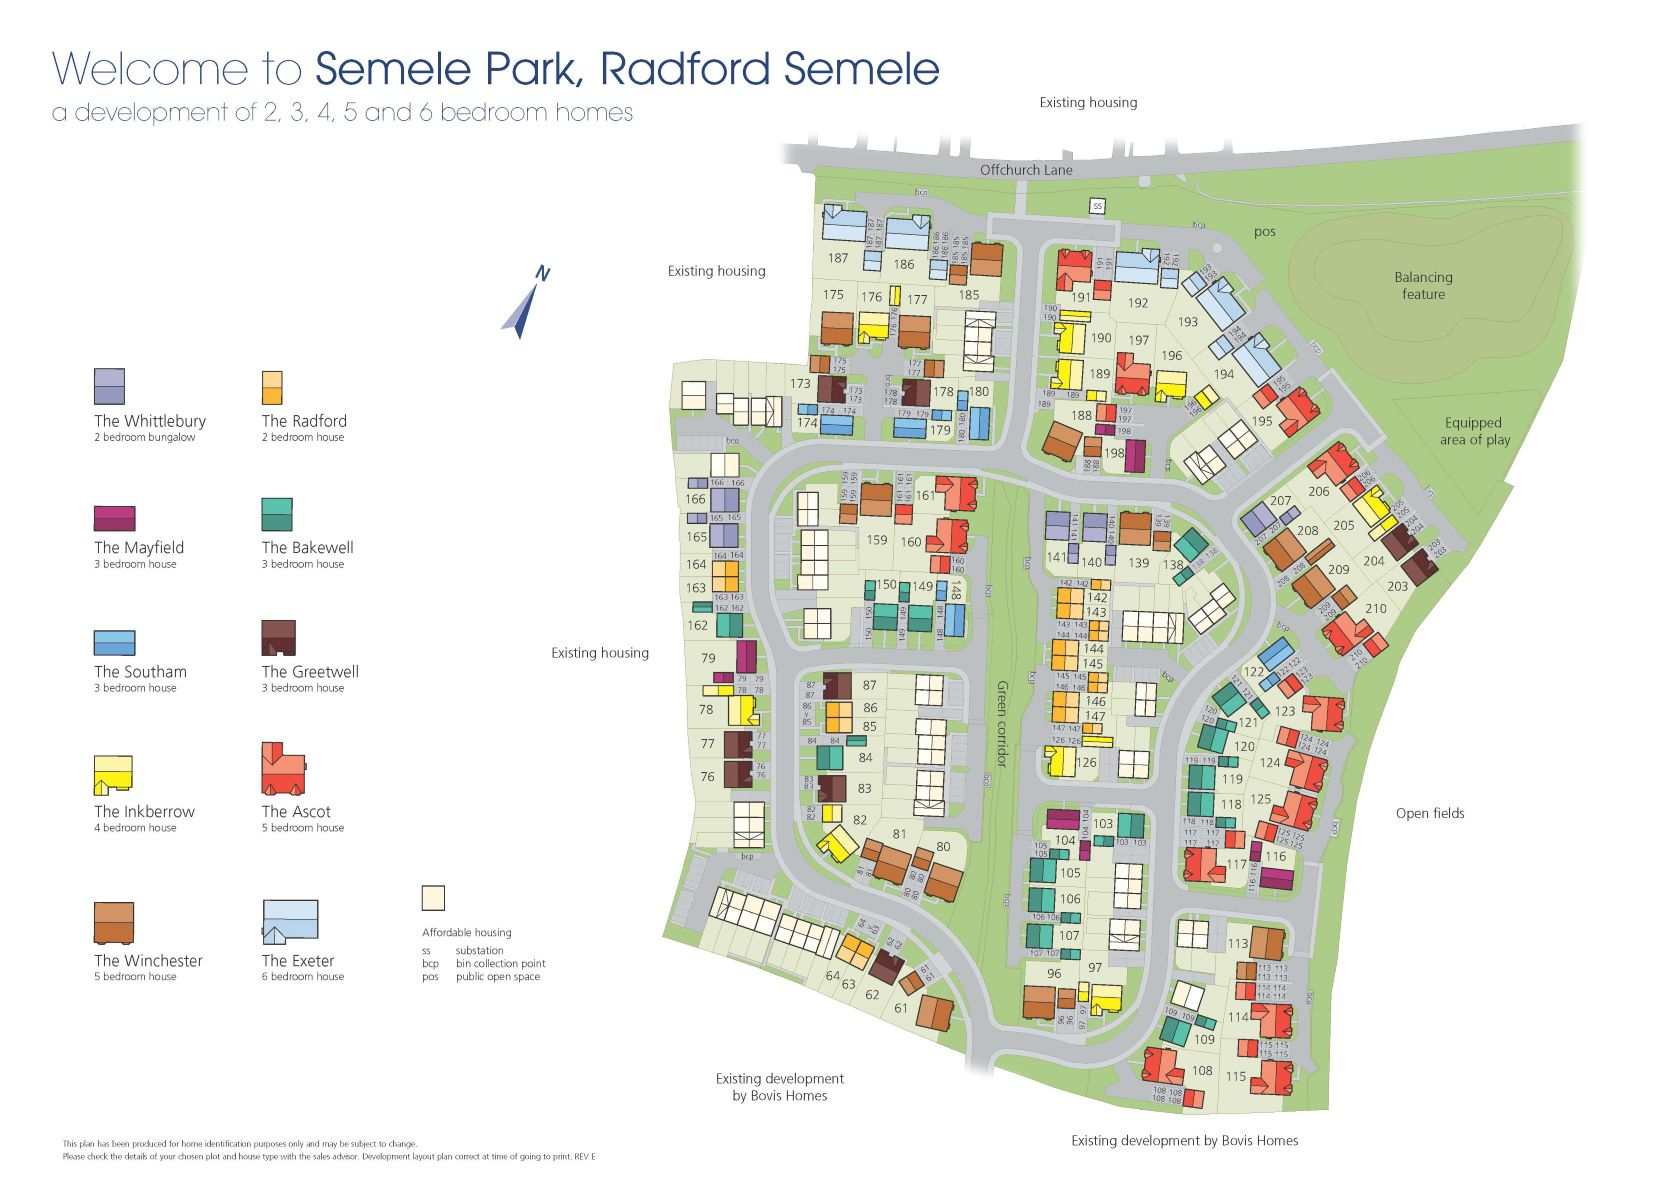 Semele Park Site Map